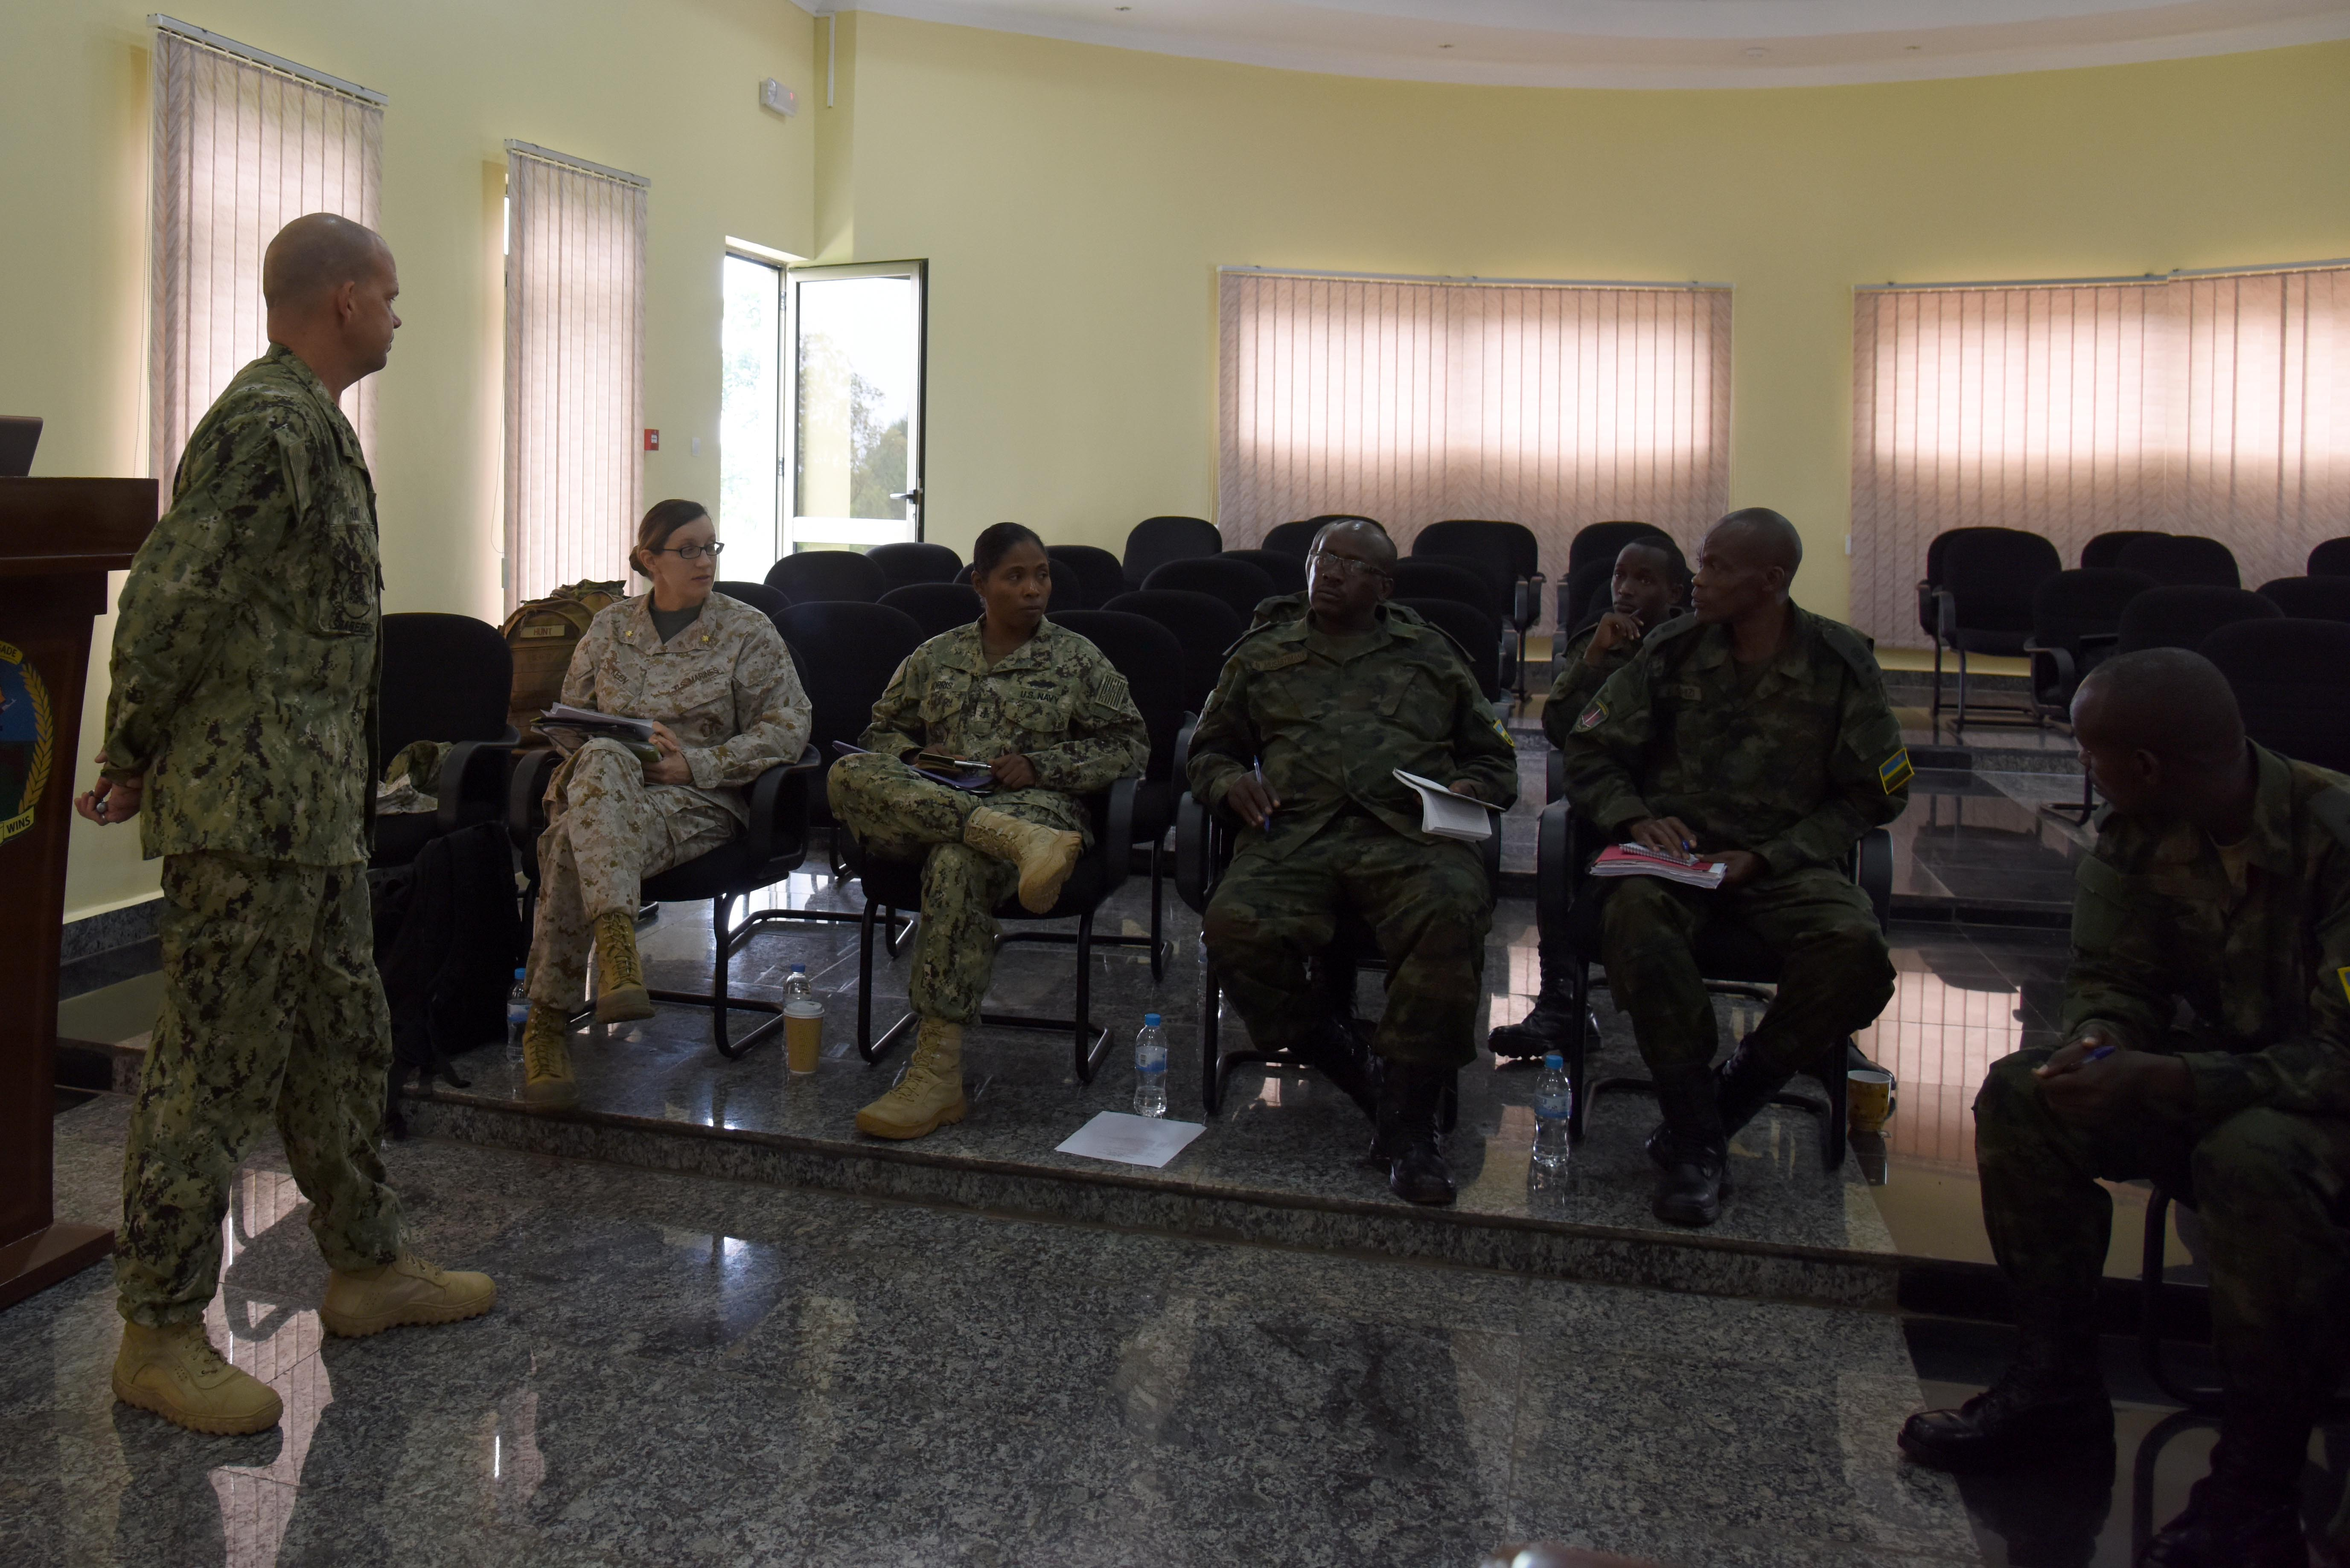 Engineers from Combined Joint Task Force-Horn of Africa and the Rwandan Defense Force exchange ideas on expeditionary camp planning at the RDF Engineering Brigade Headquarters near Kigali, Rwanda, Dec. 17, 2015. Both sides discussed approaches to support different types of operational units and missions in expeditionary environments. (U.S. Air Force photo by Staff Sgt. Victoria Sneed)